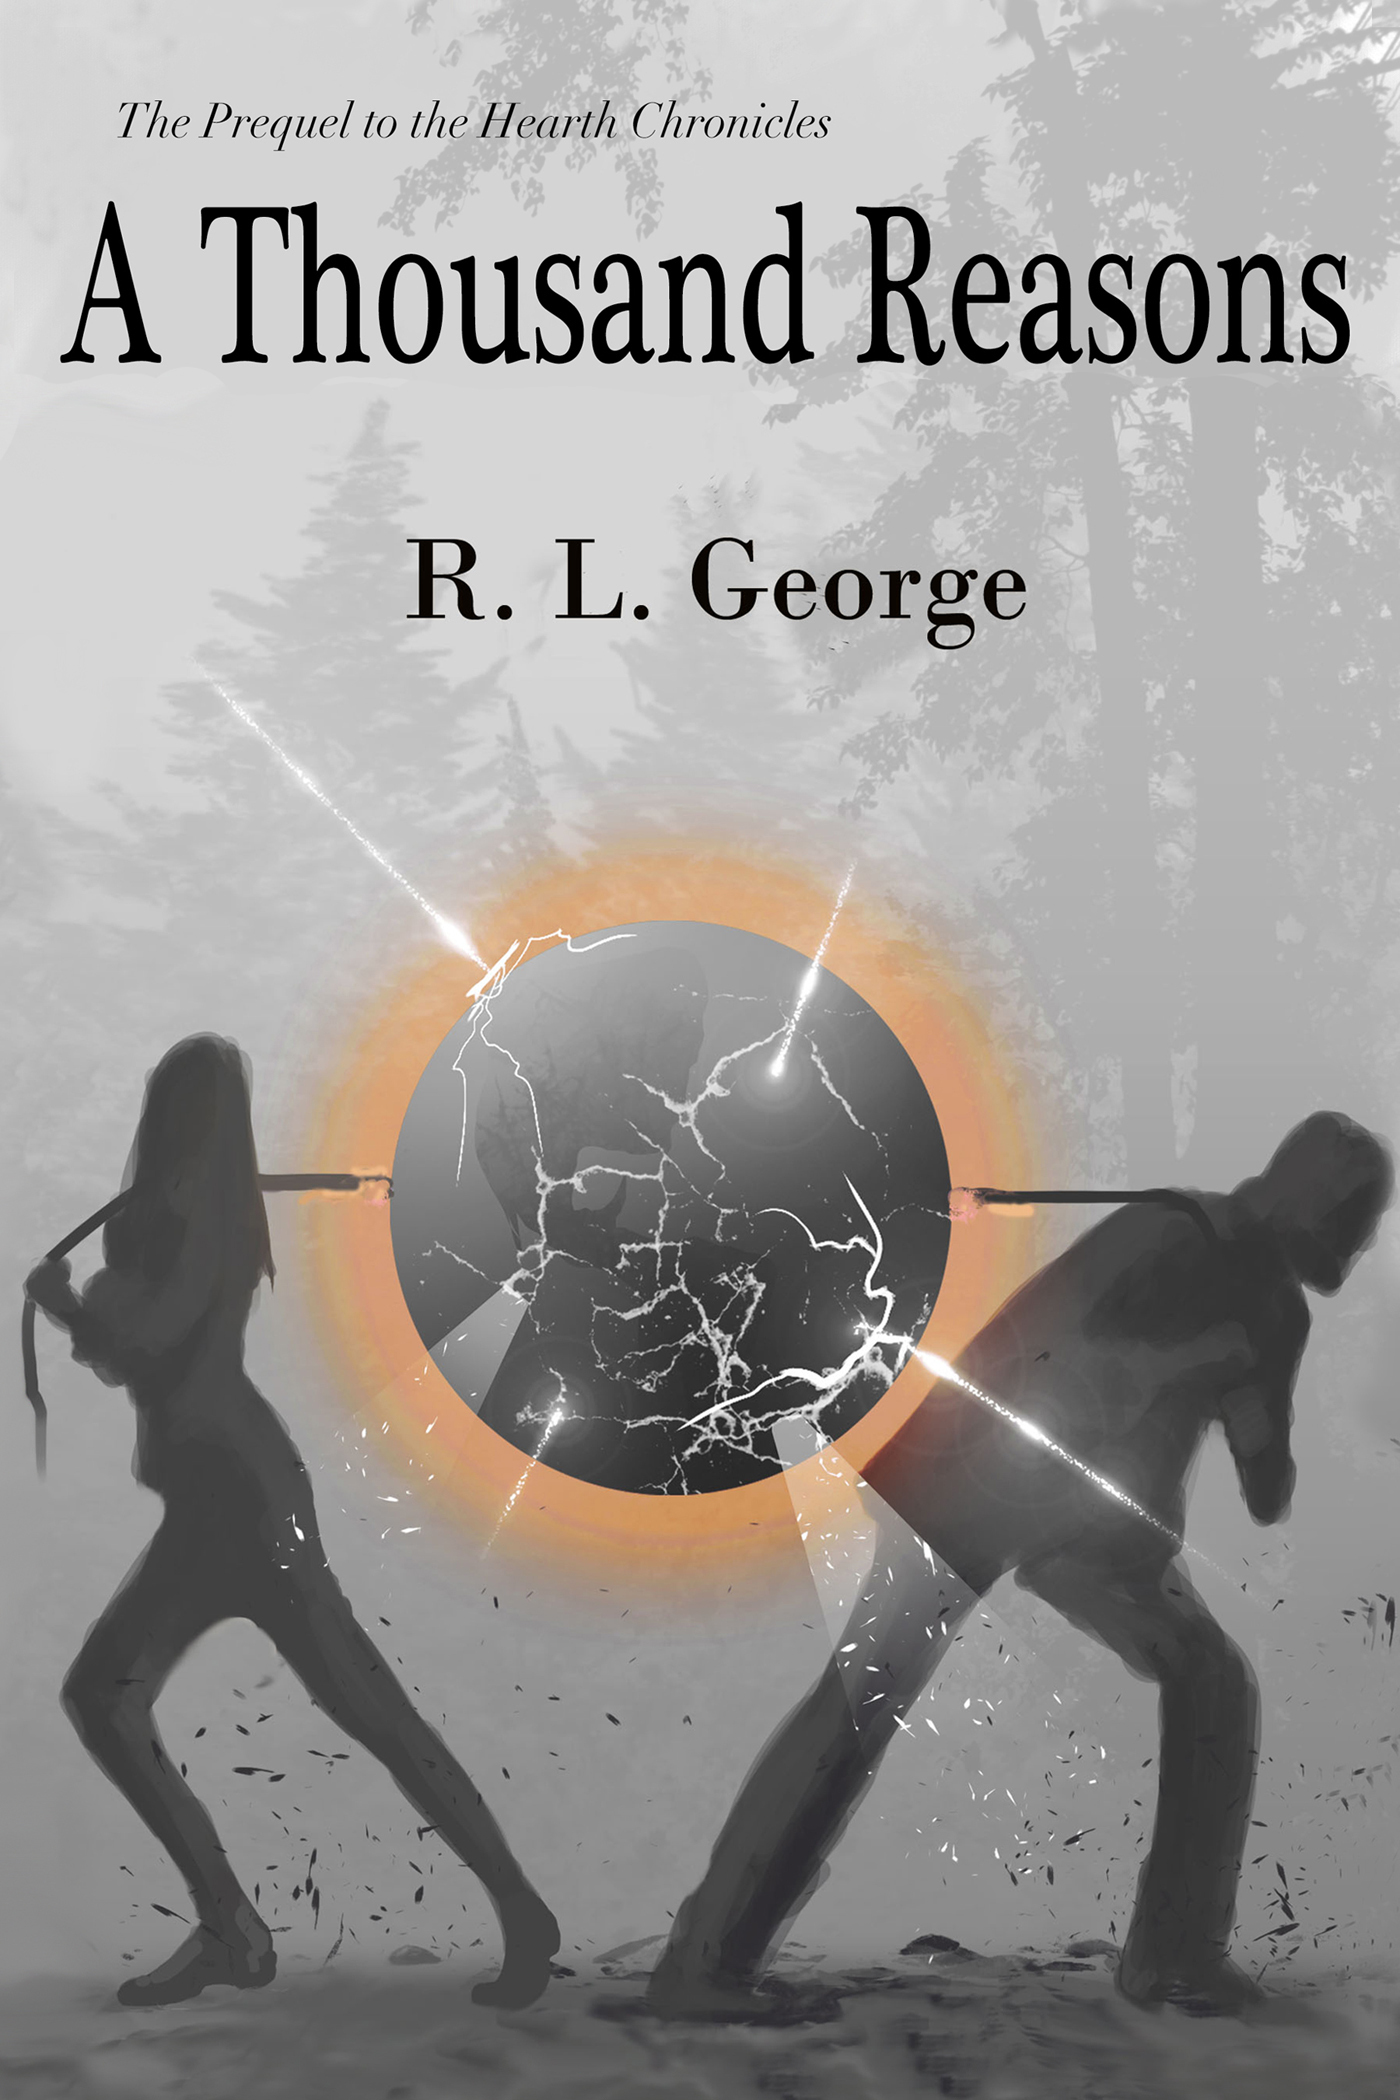 A Thousand Reasons R. L. George